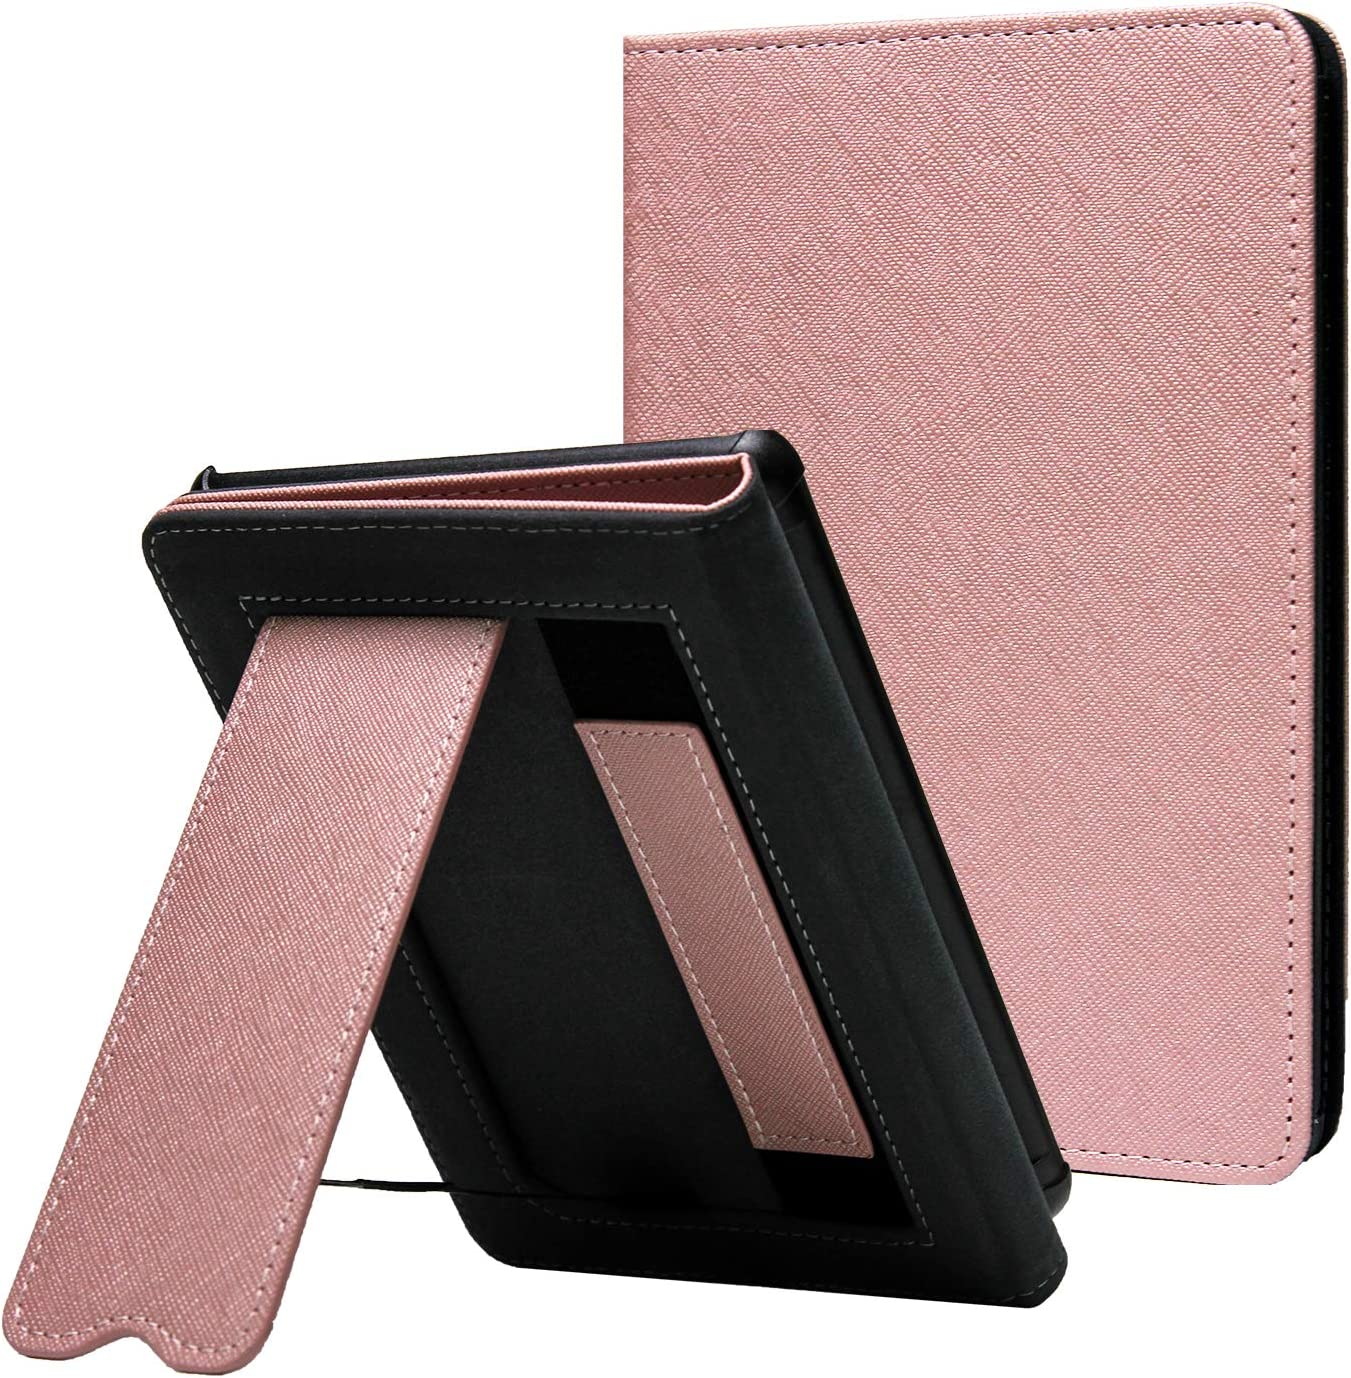 CoBak Case for All New Kindle 10th Generation 2019 Released - Durable PU Leather Smart Cover with Auto Sleep Wake, Hand Strap Feature,Will Not Fit Kindle Paperwhite or Kindle Oasis, Rose Gold.